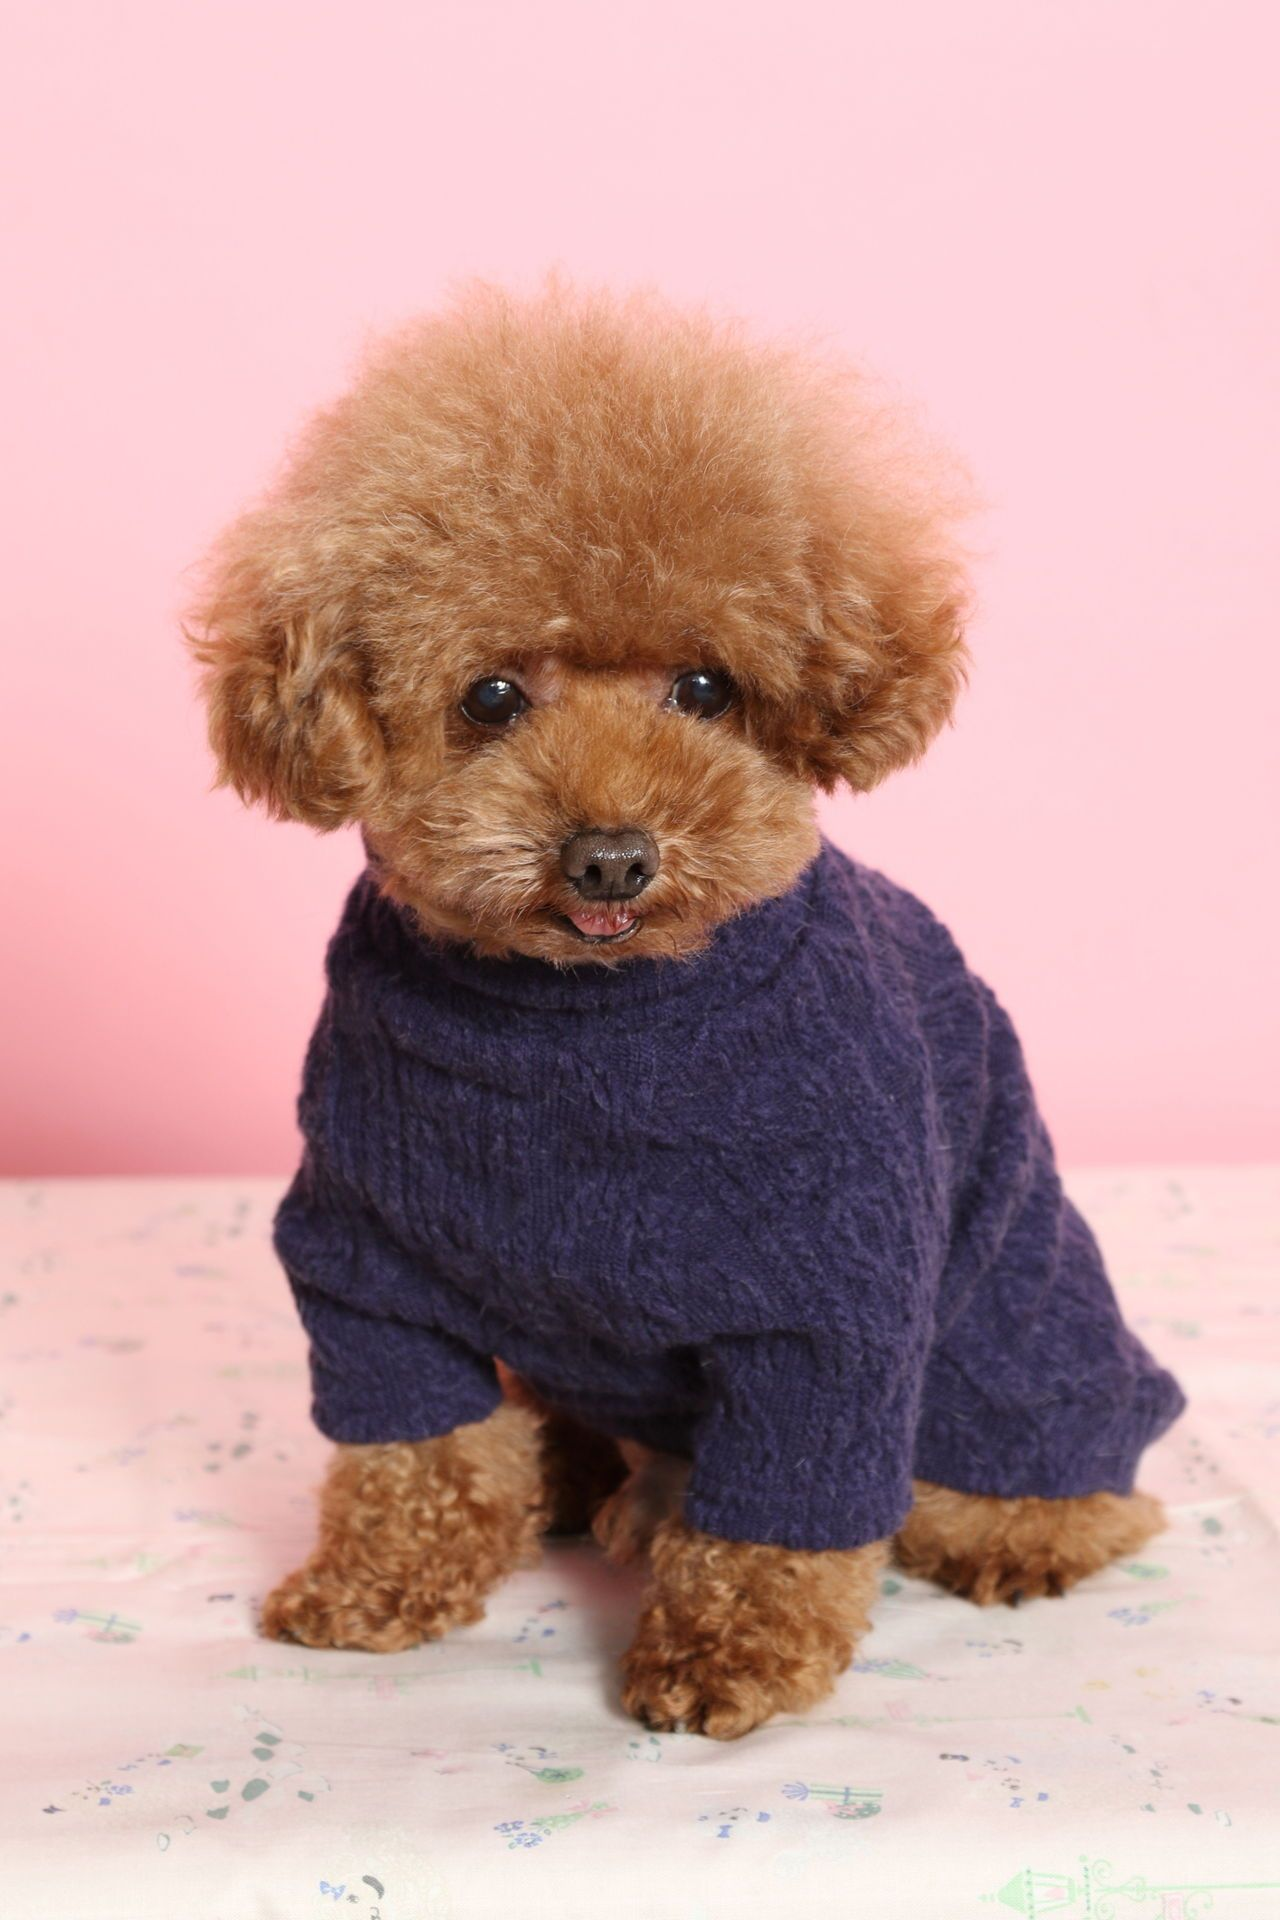 Dog Toy Poodle Check Out Http Www Upscaledogtoys Com Excellent